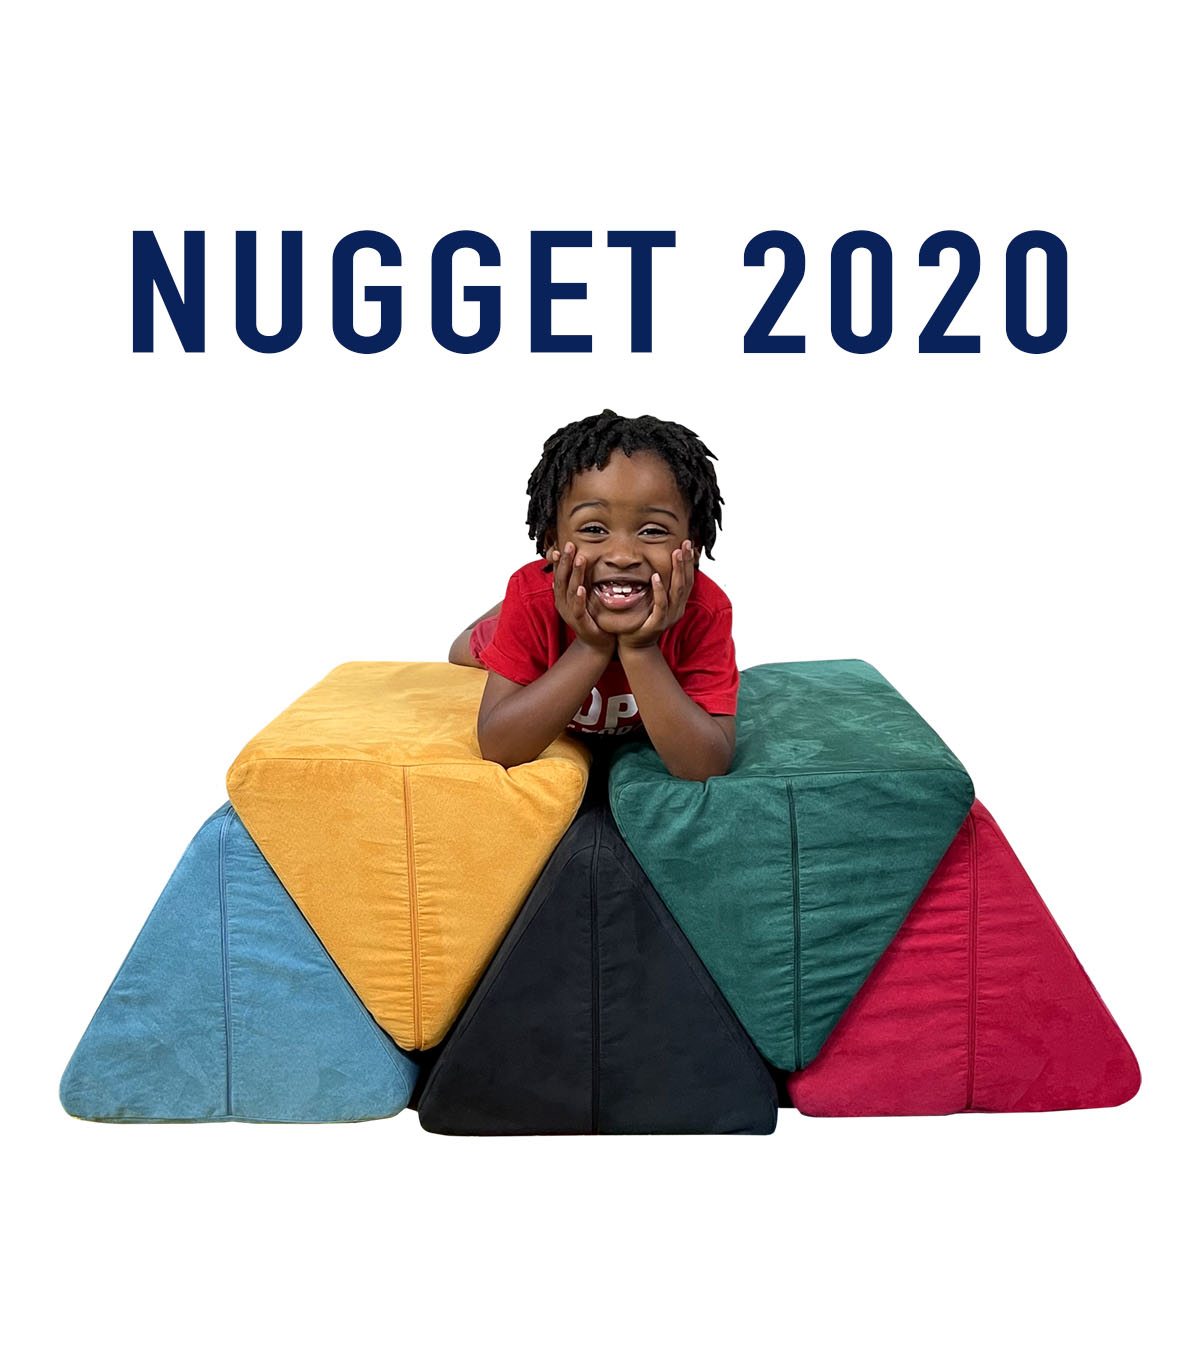 """""""Nugget 2020"""" with kid grinning on top of five Nugget pillows configured like Olympic rings"""